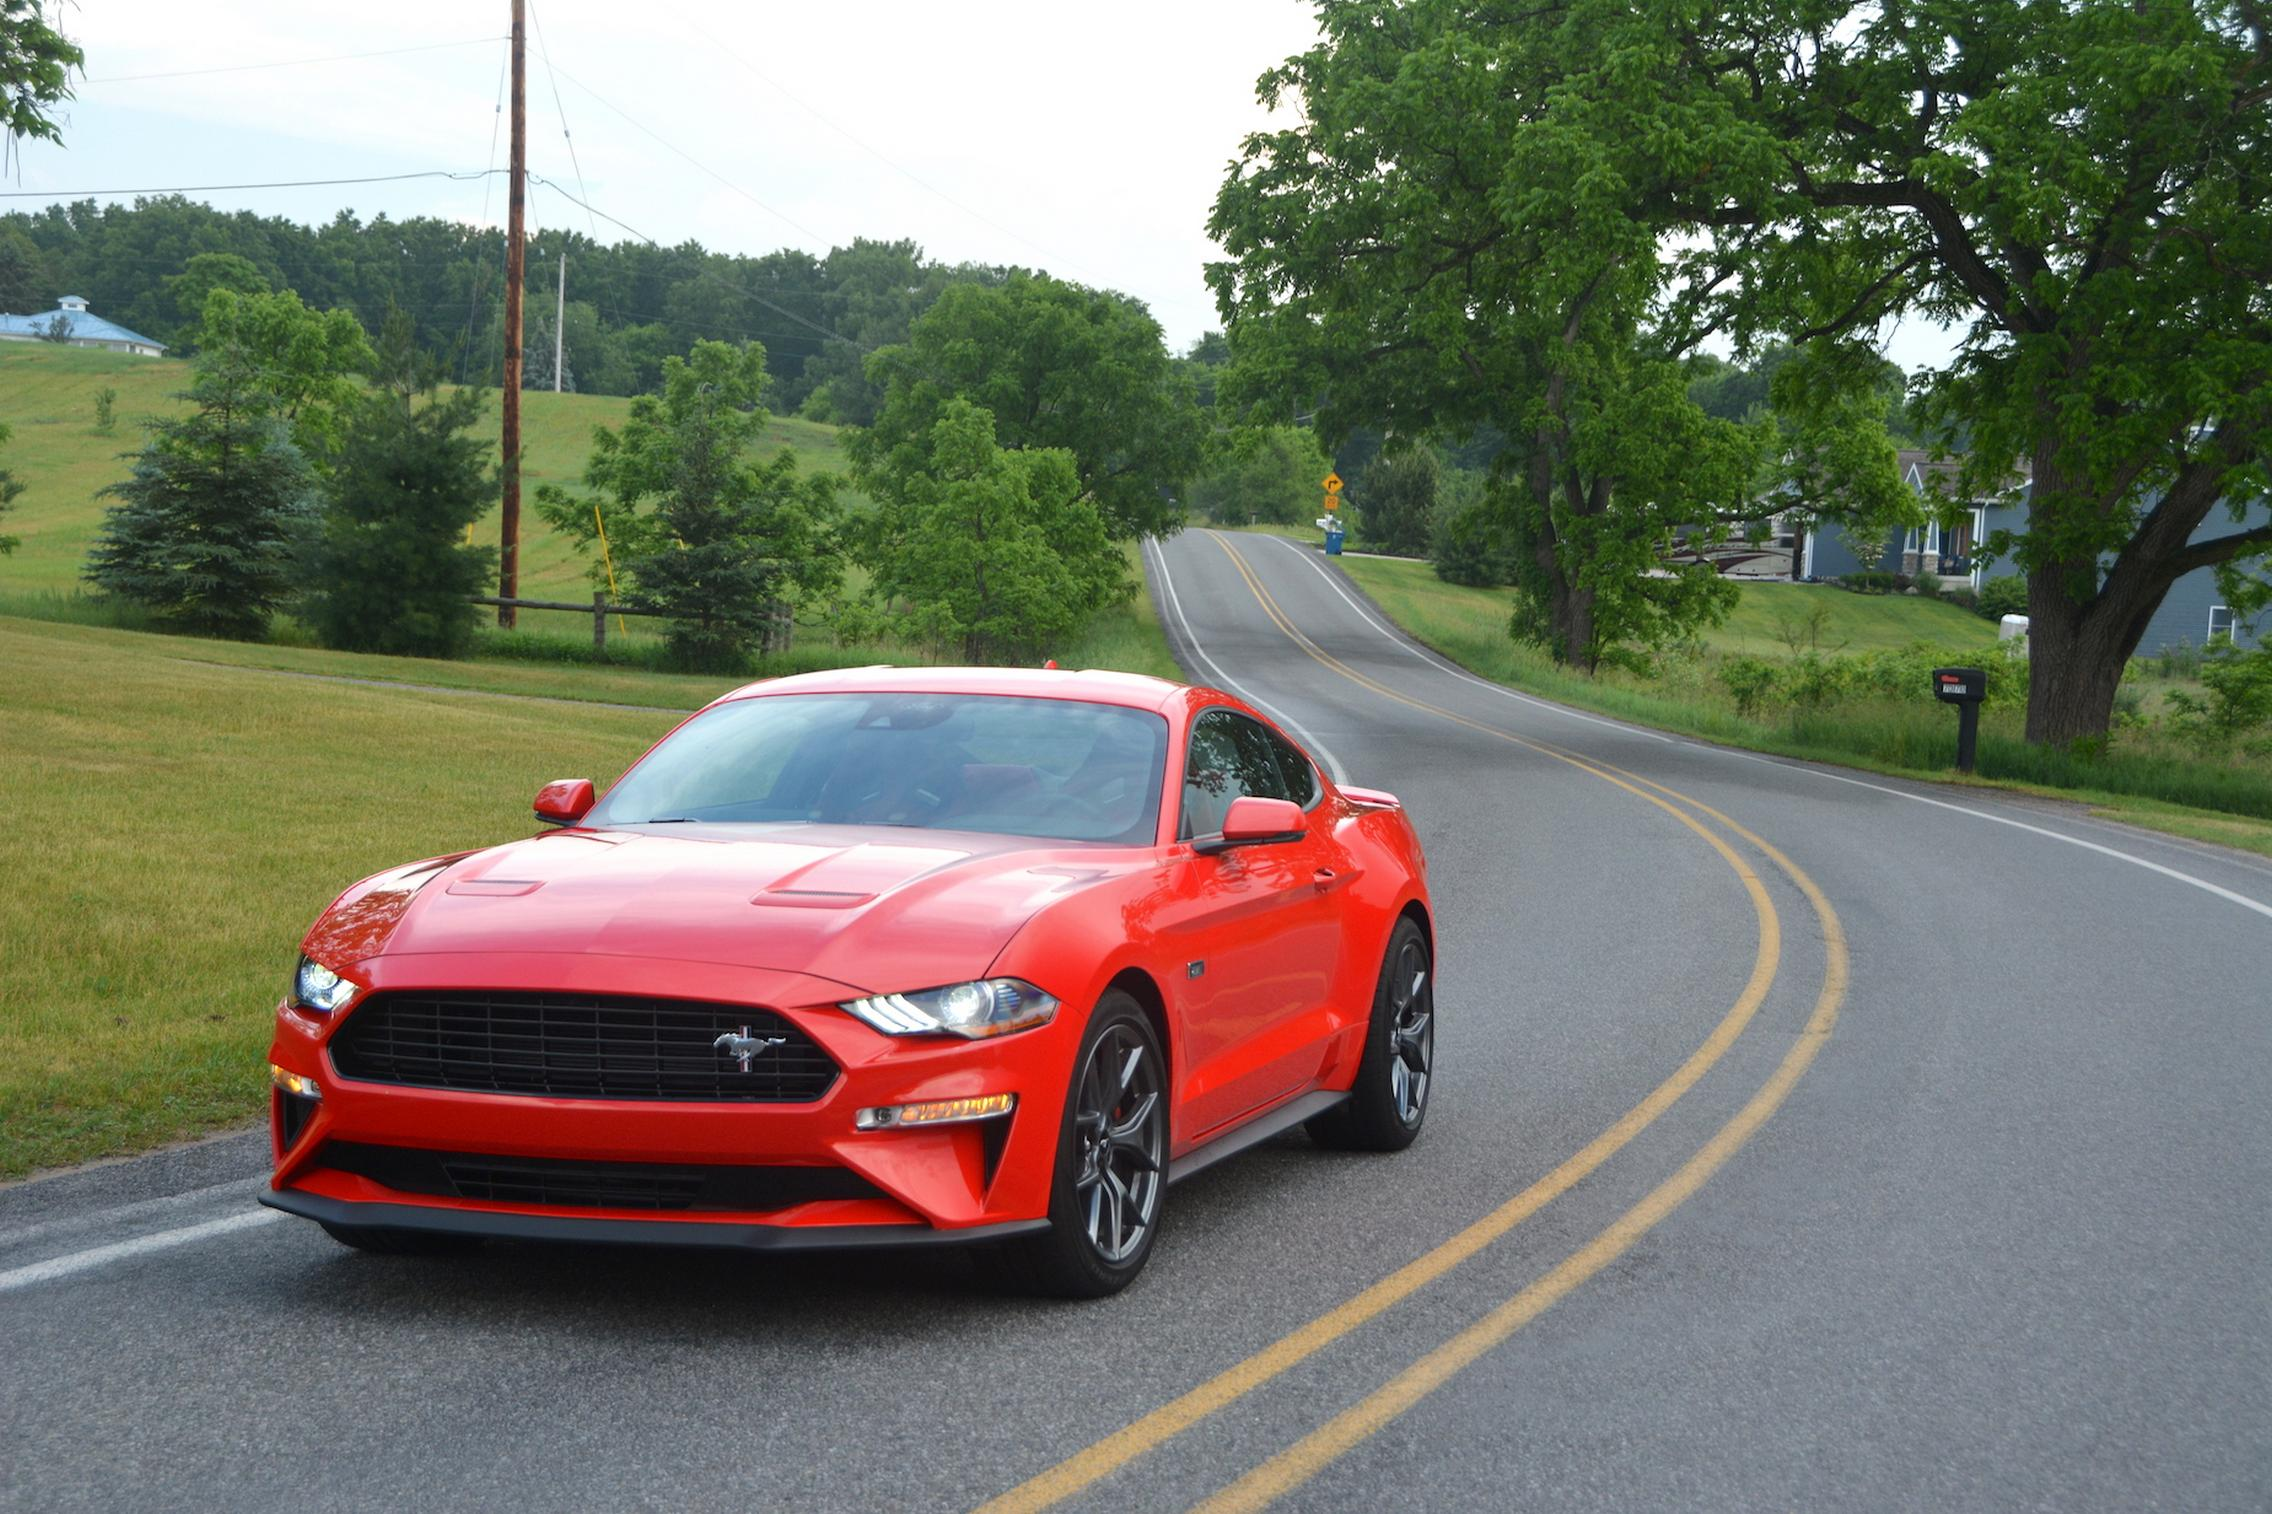 2021 Ford Mustang EcoBoost specs